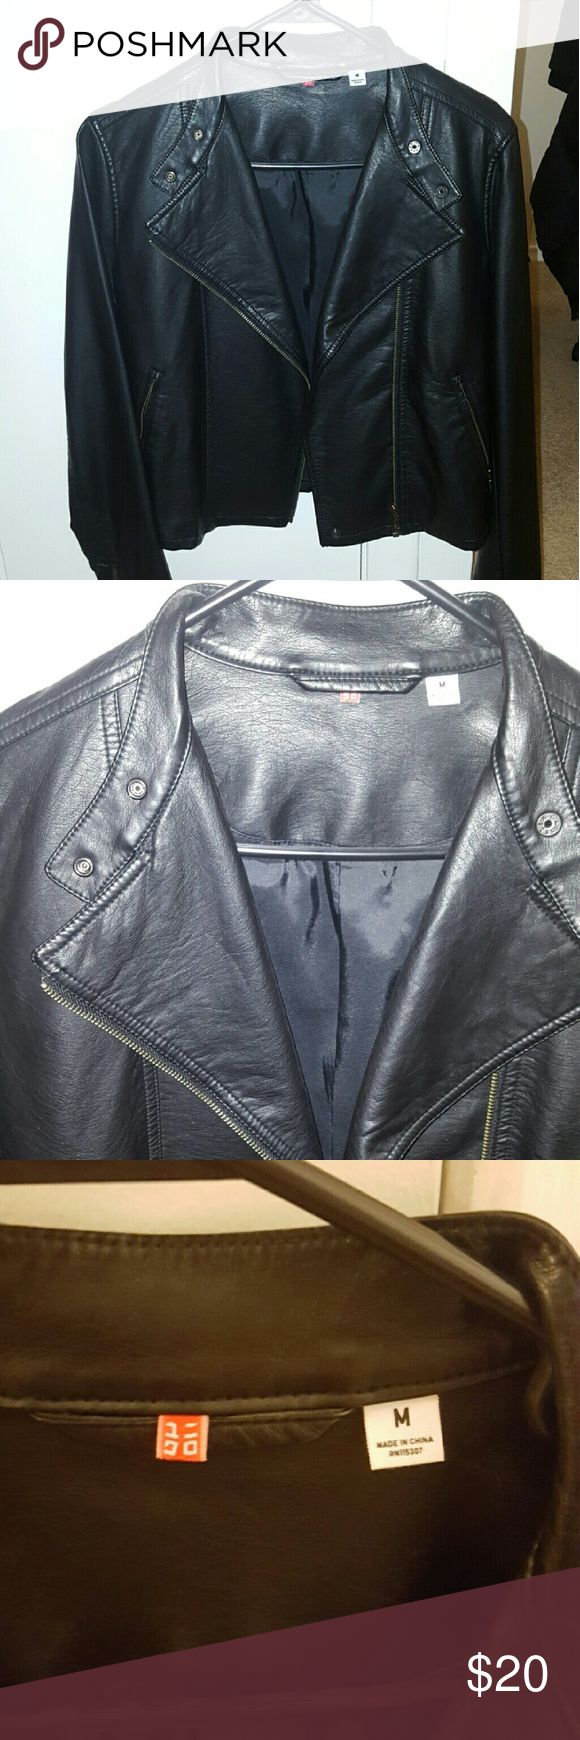 Faux leather jacket Faux leather jacket from Uniqlo. About 3 years old. It's in very good condition, hits right  at the hip, zippers at both wrist. 100% polyester Uniqlo Jackets & Coats